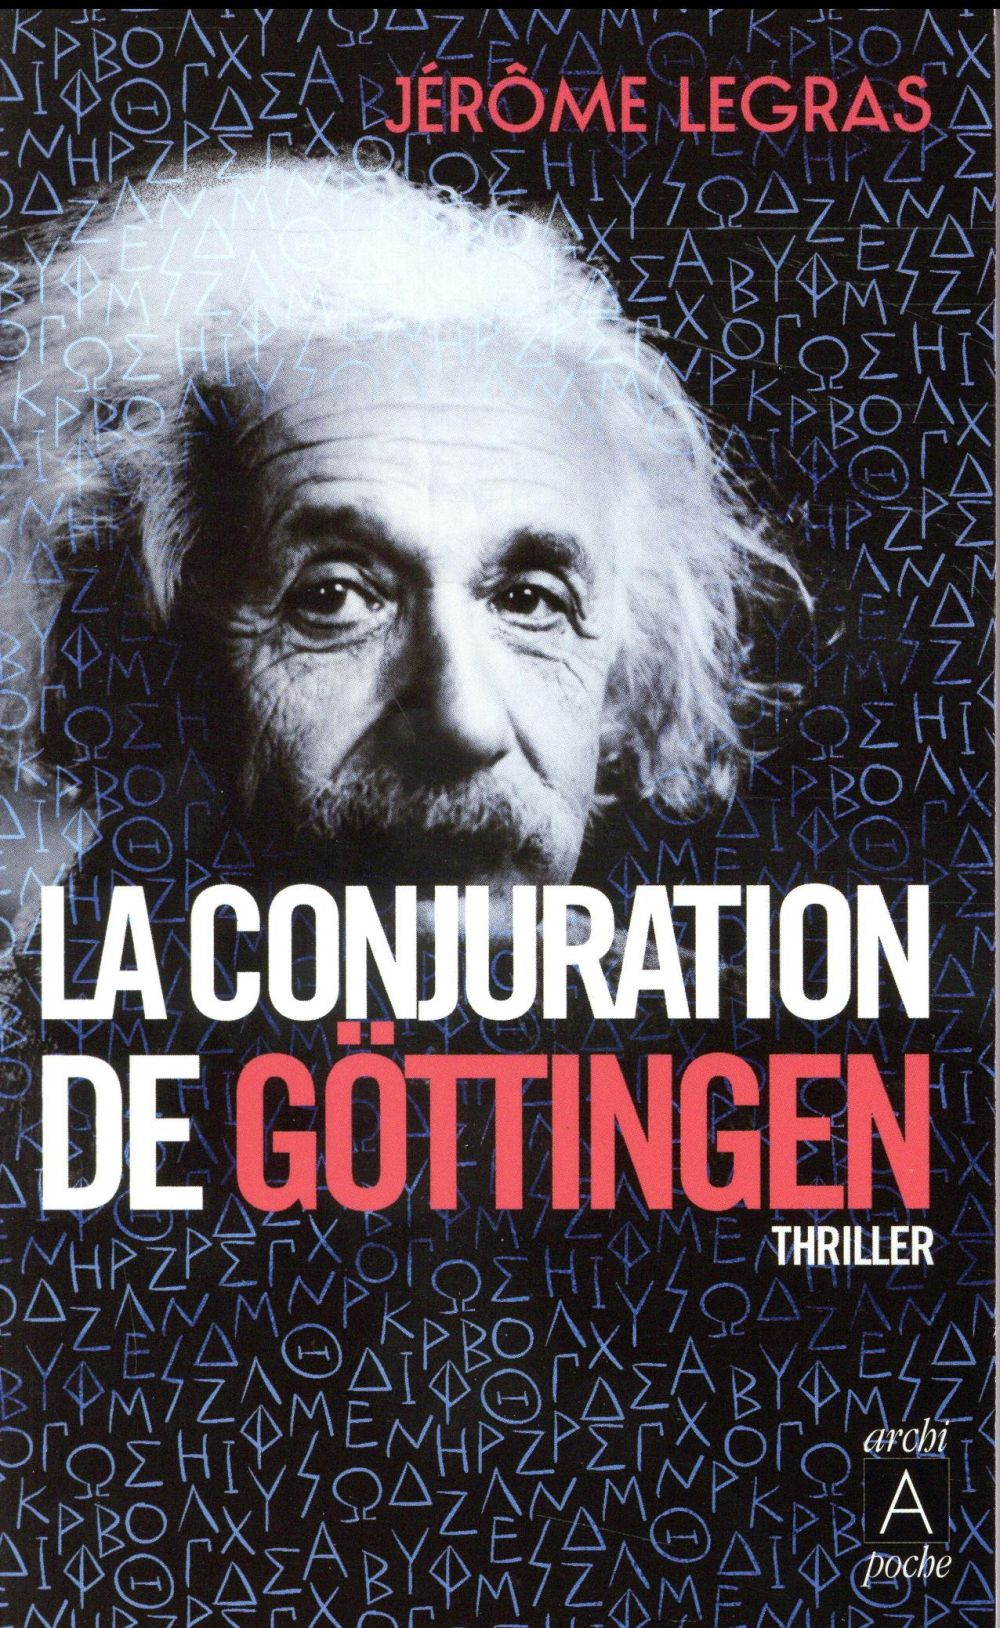 LA CONJURATION DE GOTTINGEN